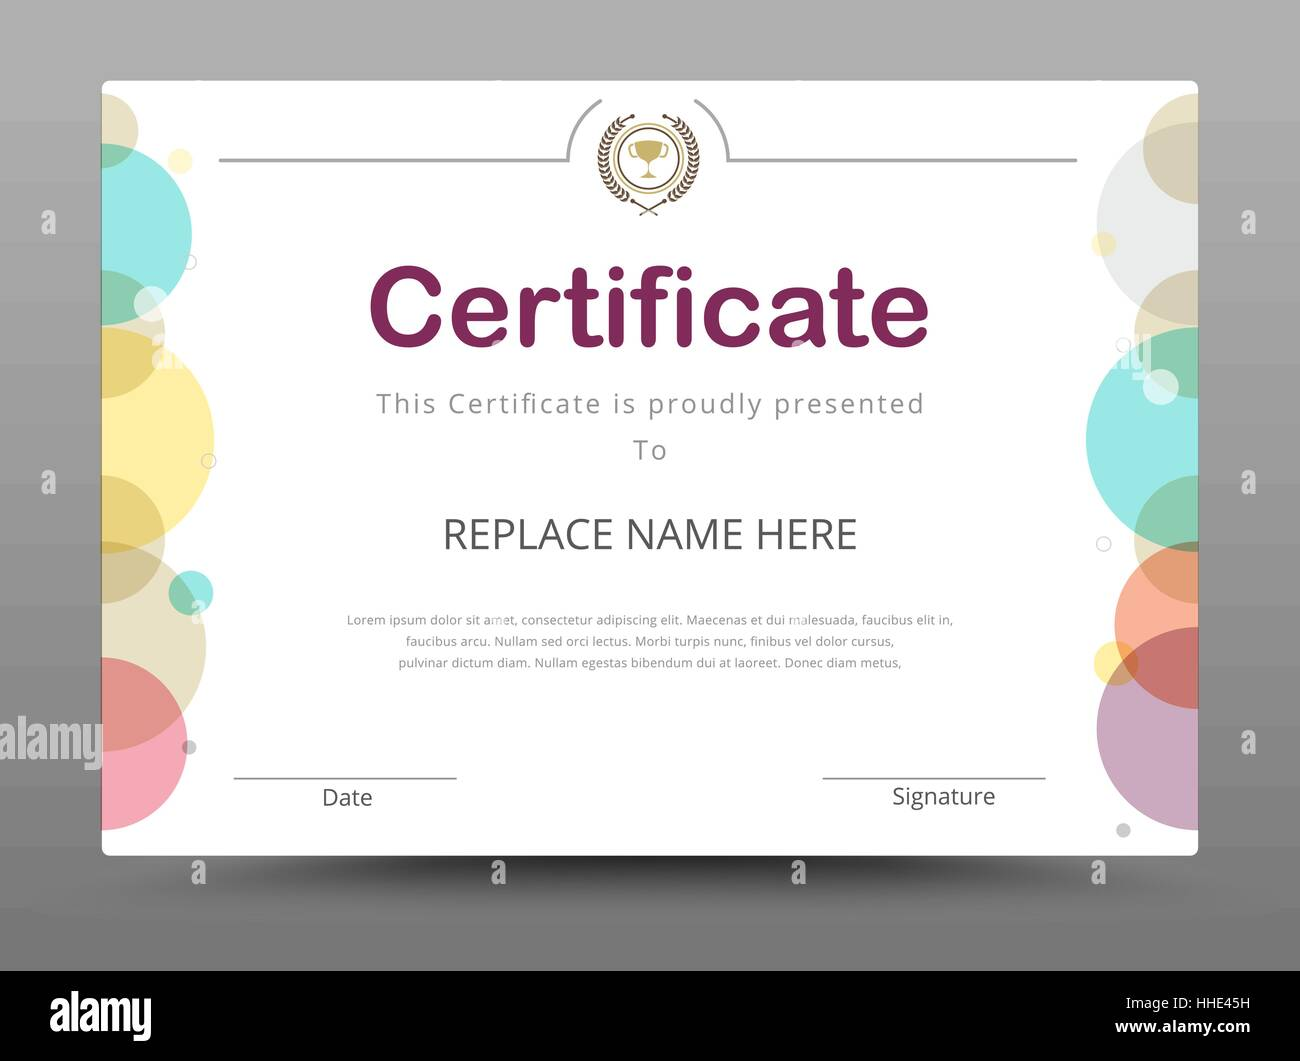 Completion Template Stock Photos & Completion Template Stock Images ...